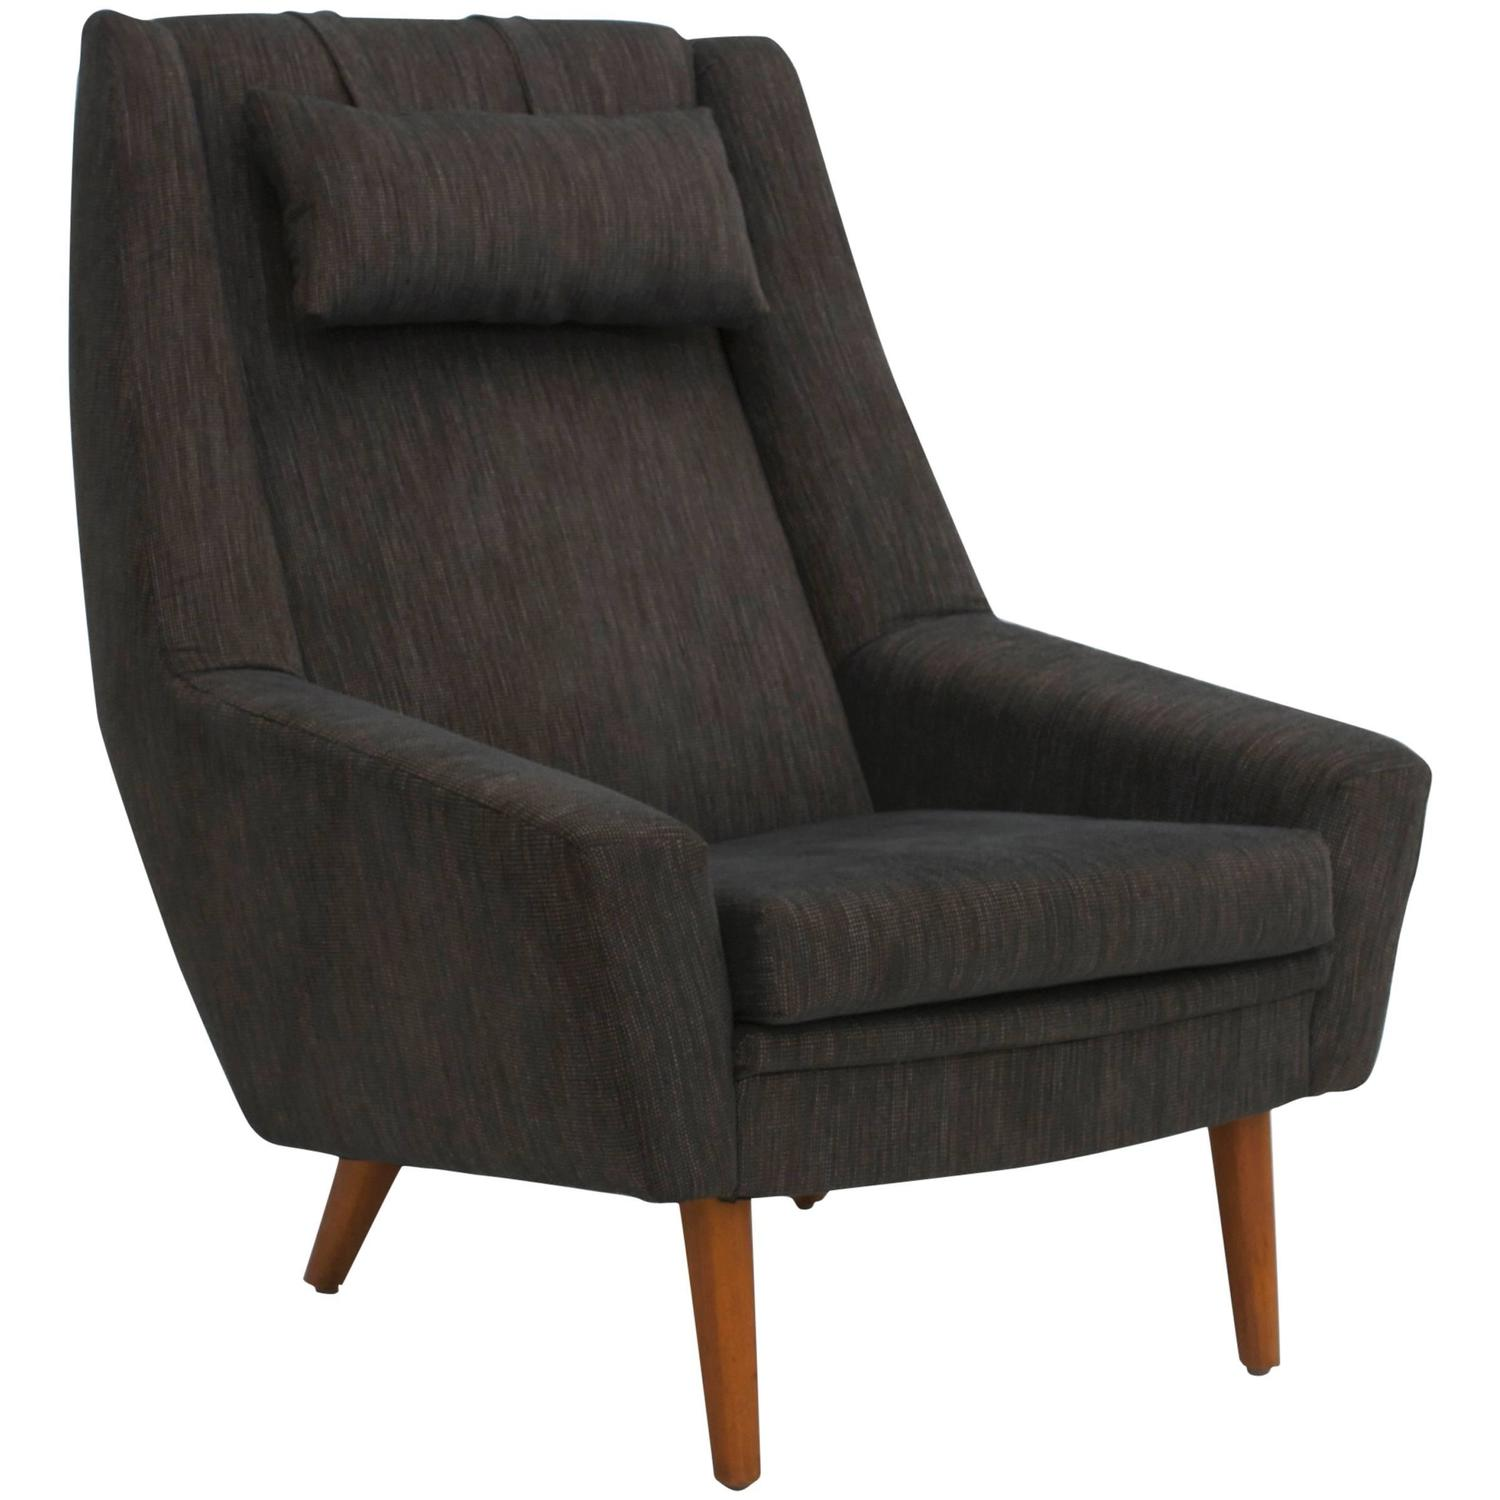 Scandinavian modern high back lounge chair at 1stdibs - Scandinavian chair ...